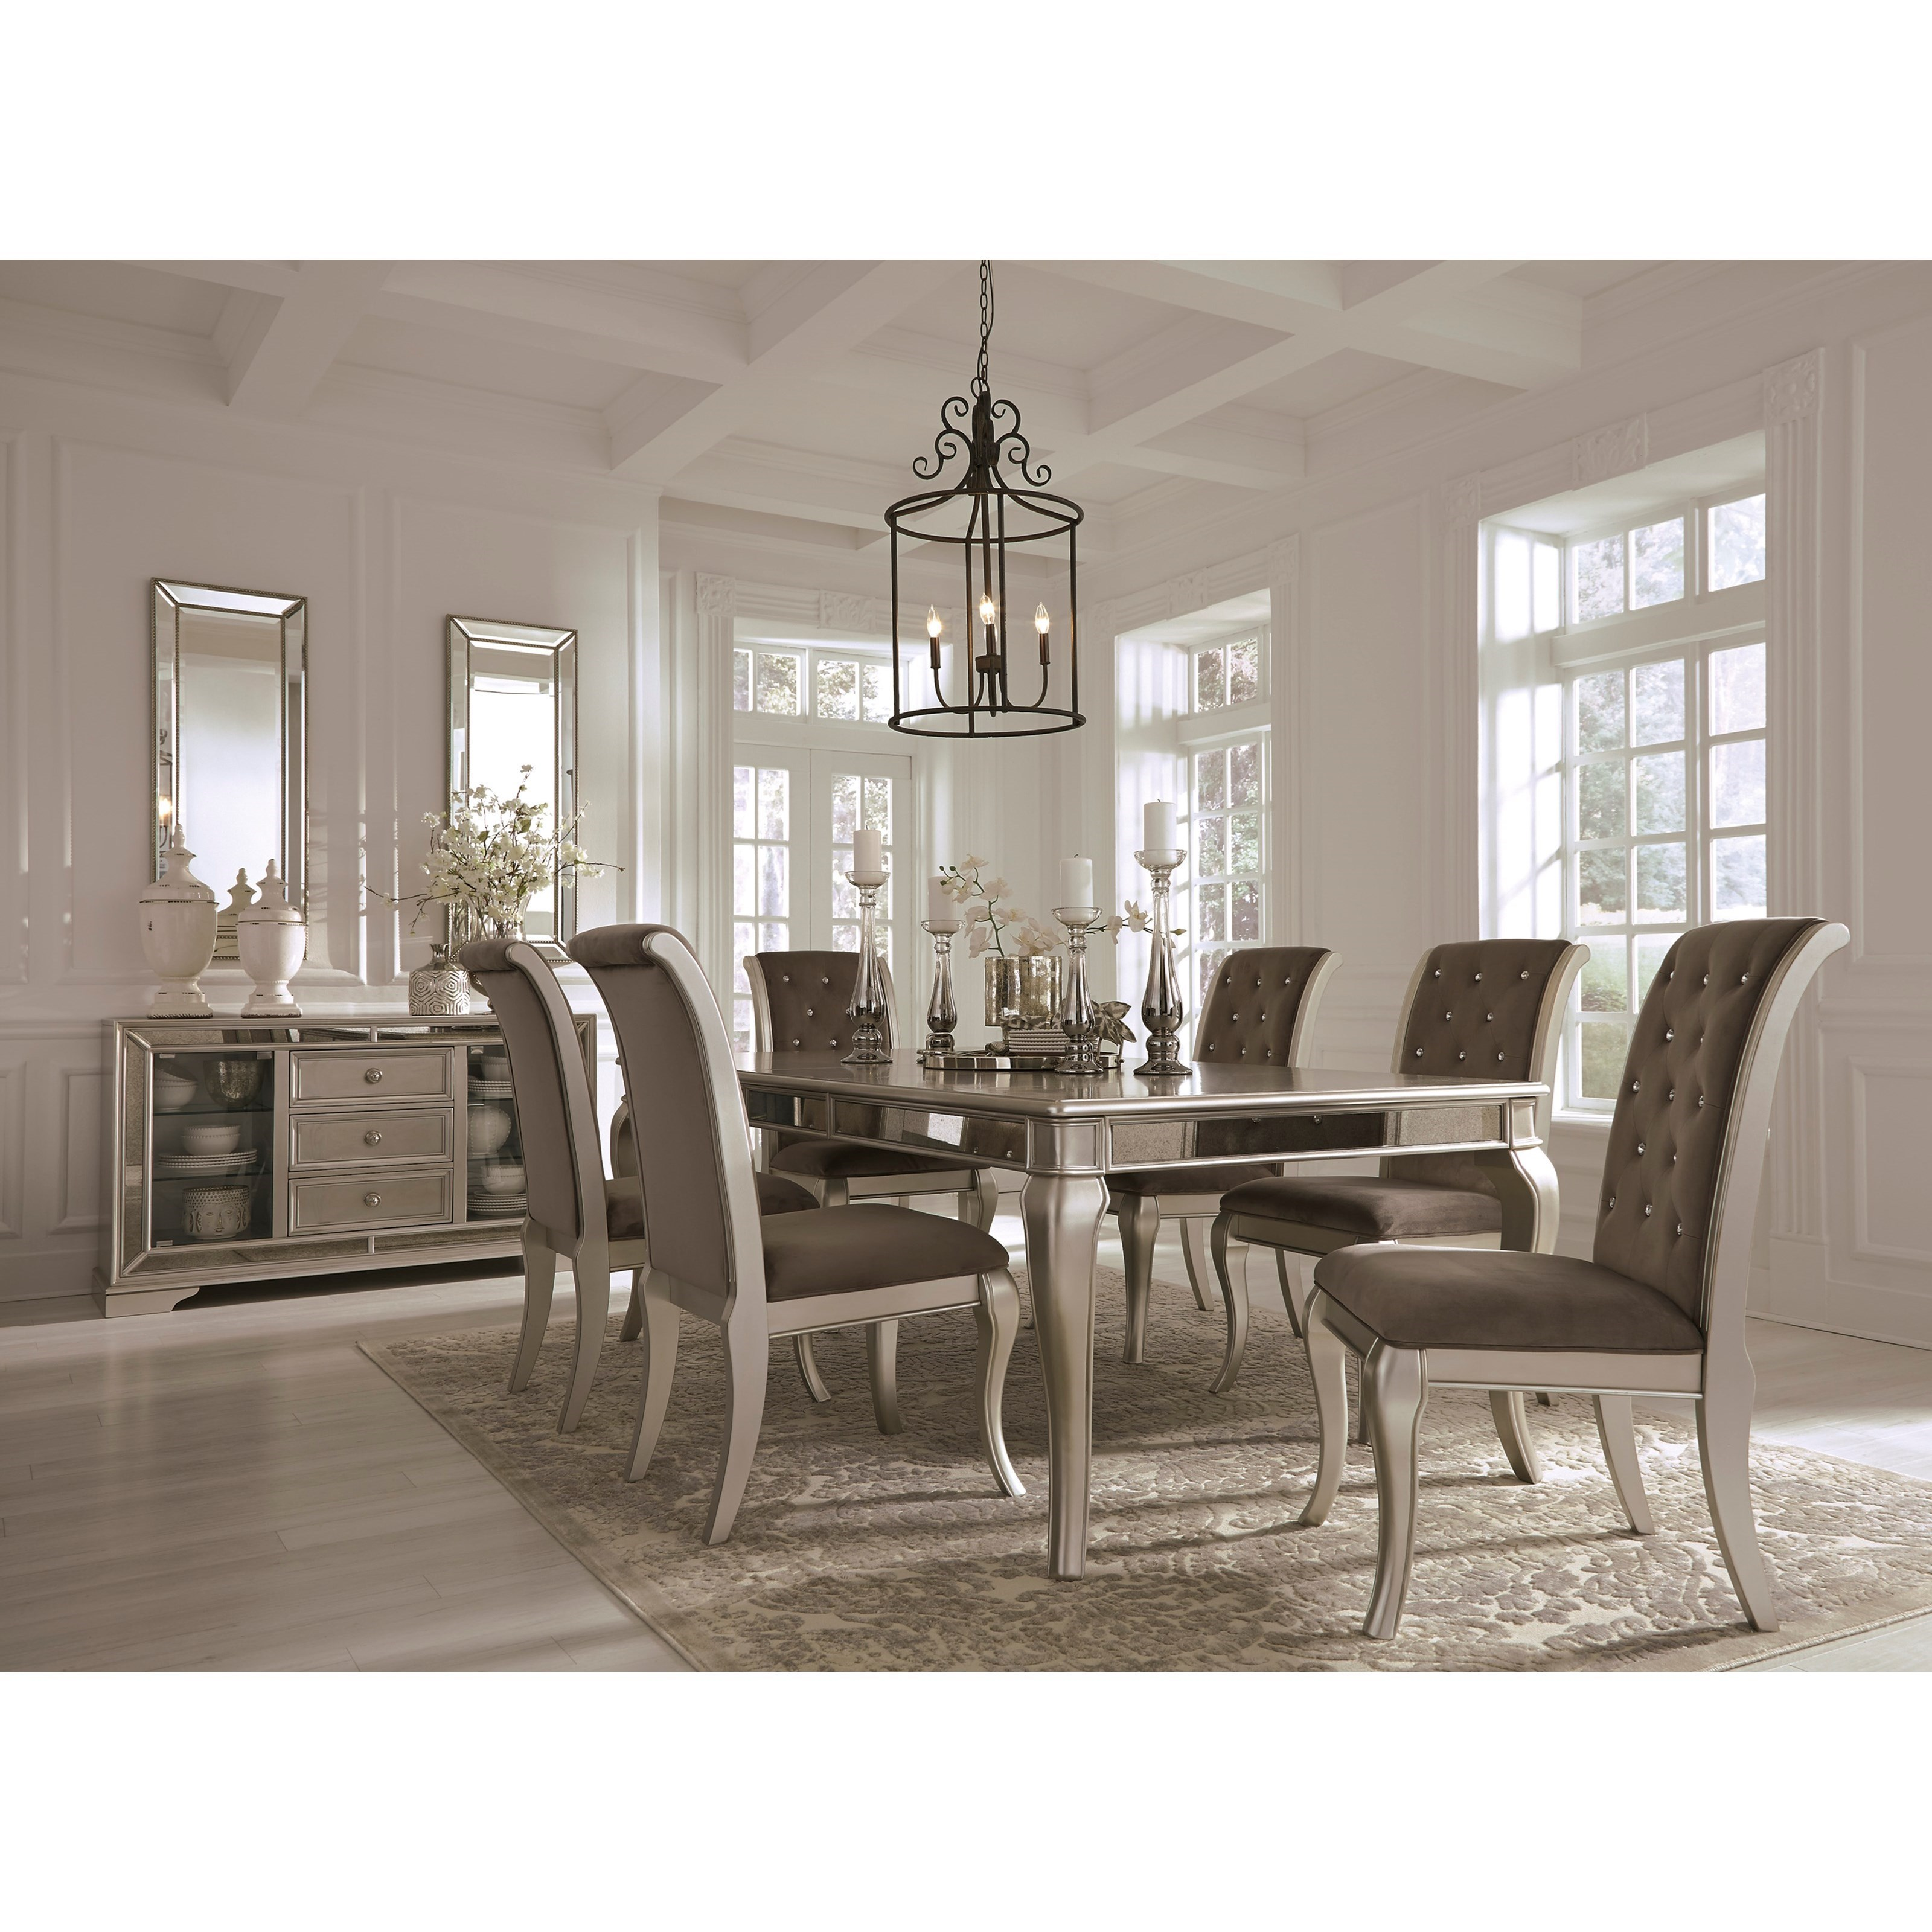 Beau Signature Design By Ashley Birlanny Formal Dining Room Group